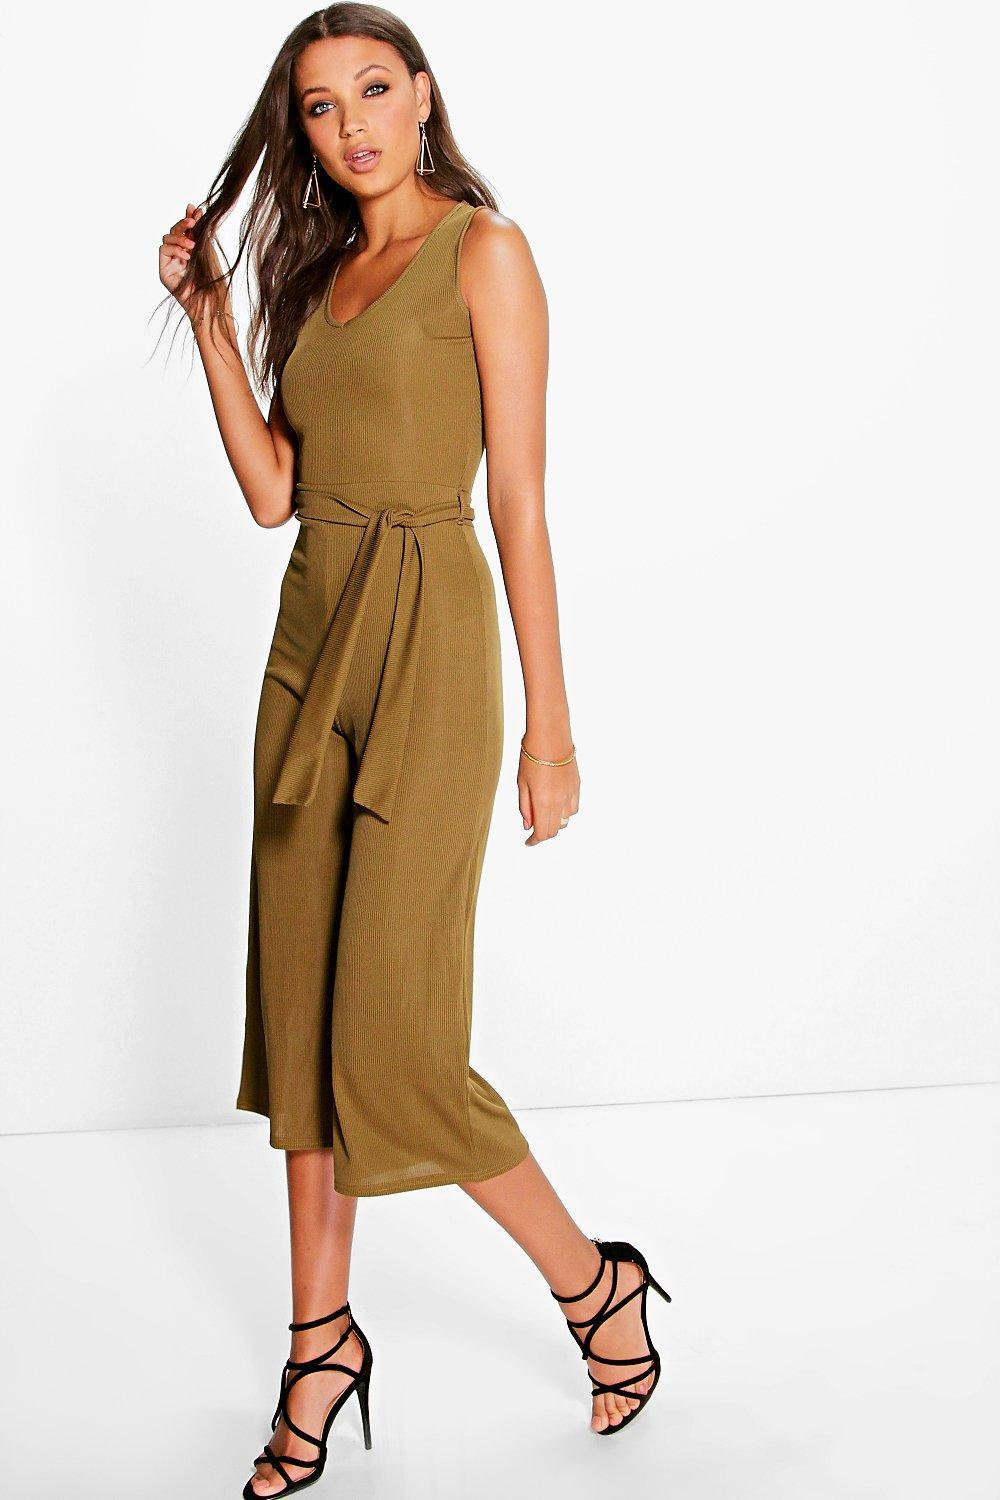 Naomi Ribbed Tie Front Culotte Jumpsuit Olive - sleeve style: standard vest straps/shoulder straps; pattern: plain; waist detail: belted waist/tie at waist/drawstring; predominant colour: khaki; occasions: evening; length: calf length; fit: body skimming; neckline: scoop; fibres: polyester/polyamide - stretch; sleeve length: sleeveless; style: jumpsuit; pattern type: fabric; texture group: jersey - stretchy/drapey; season: a/w 2016; wardrobe: event